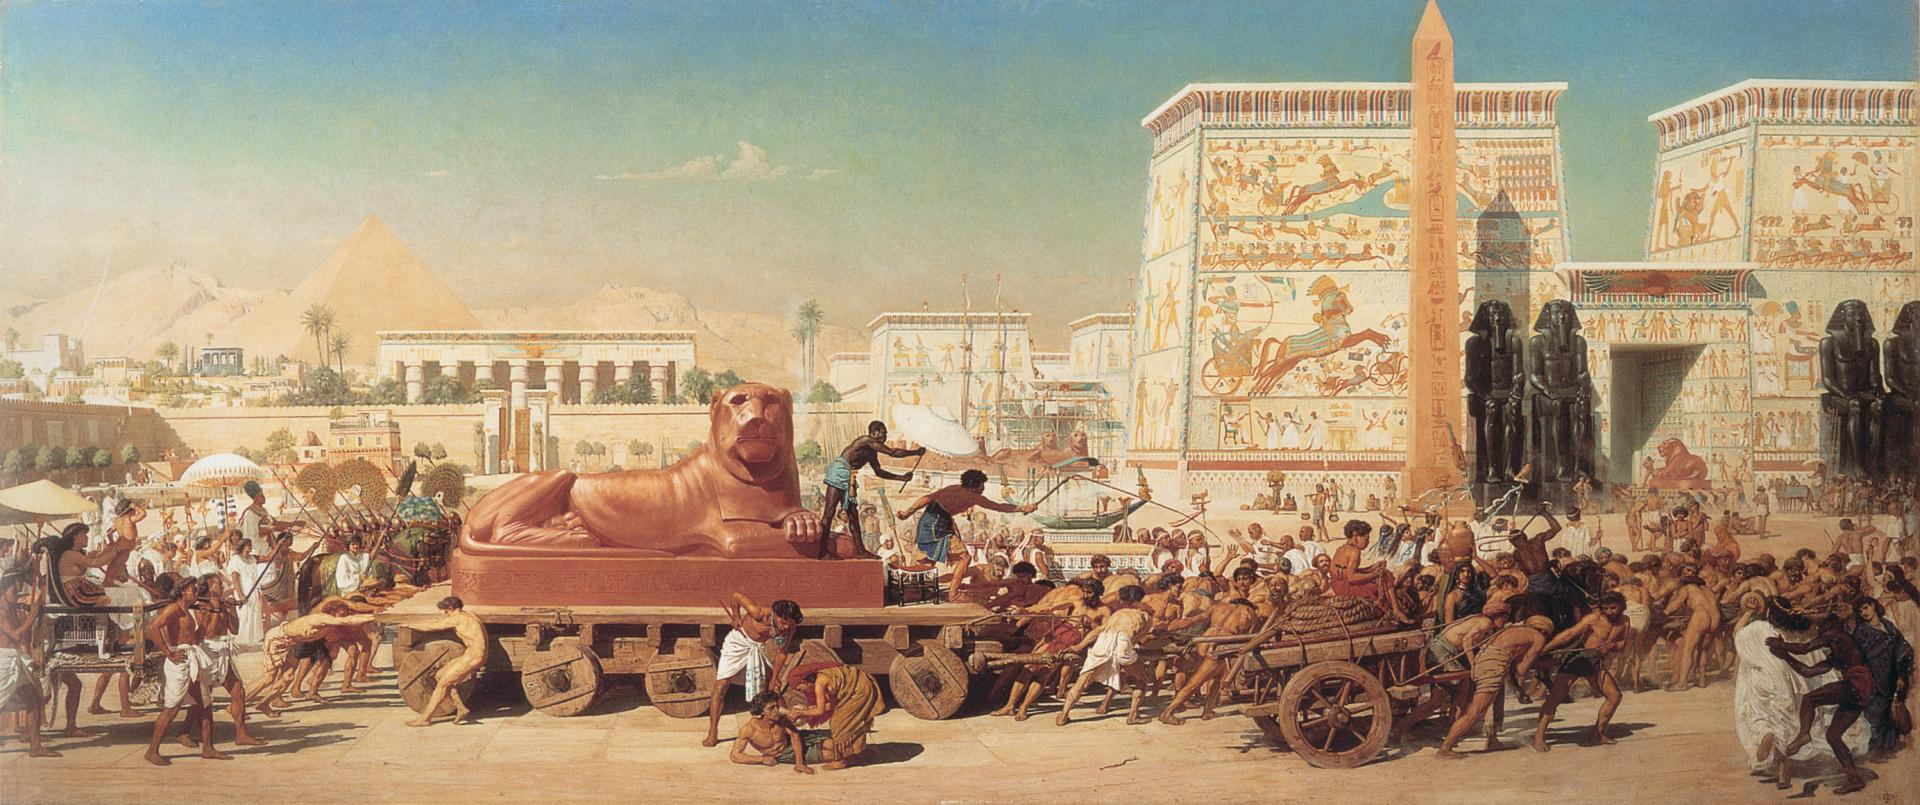 Egyptian Artistic wallpapers HD quality